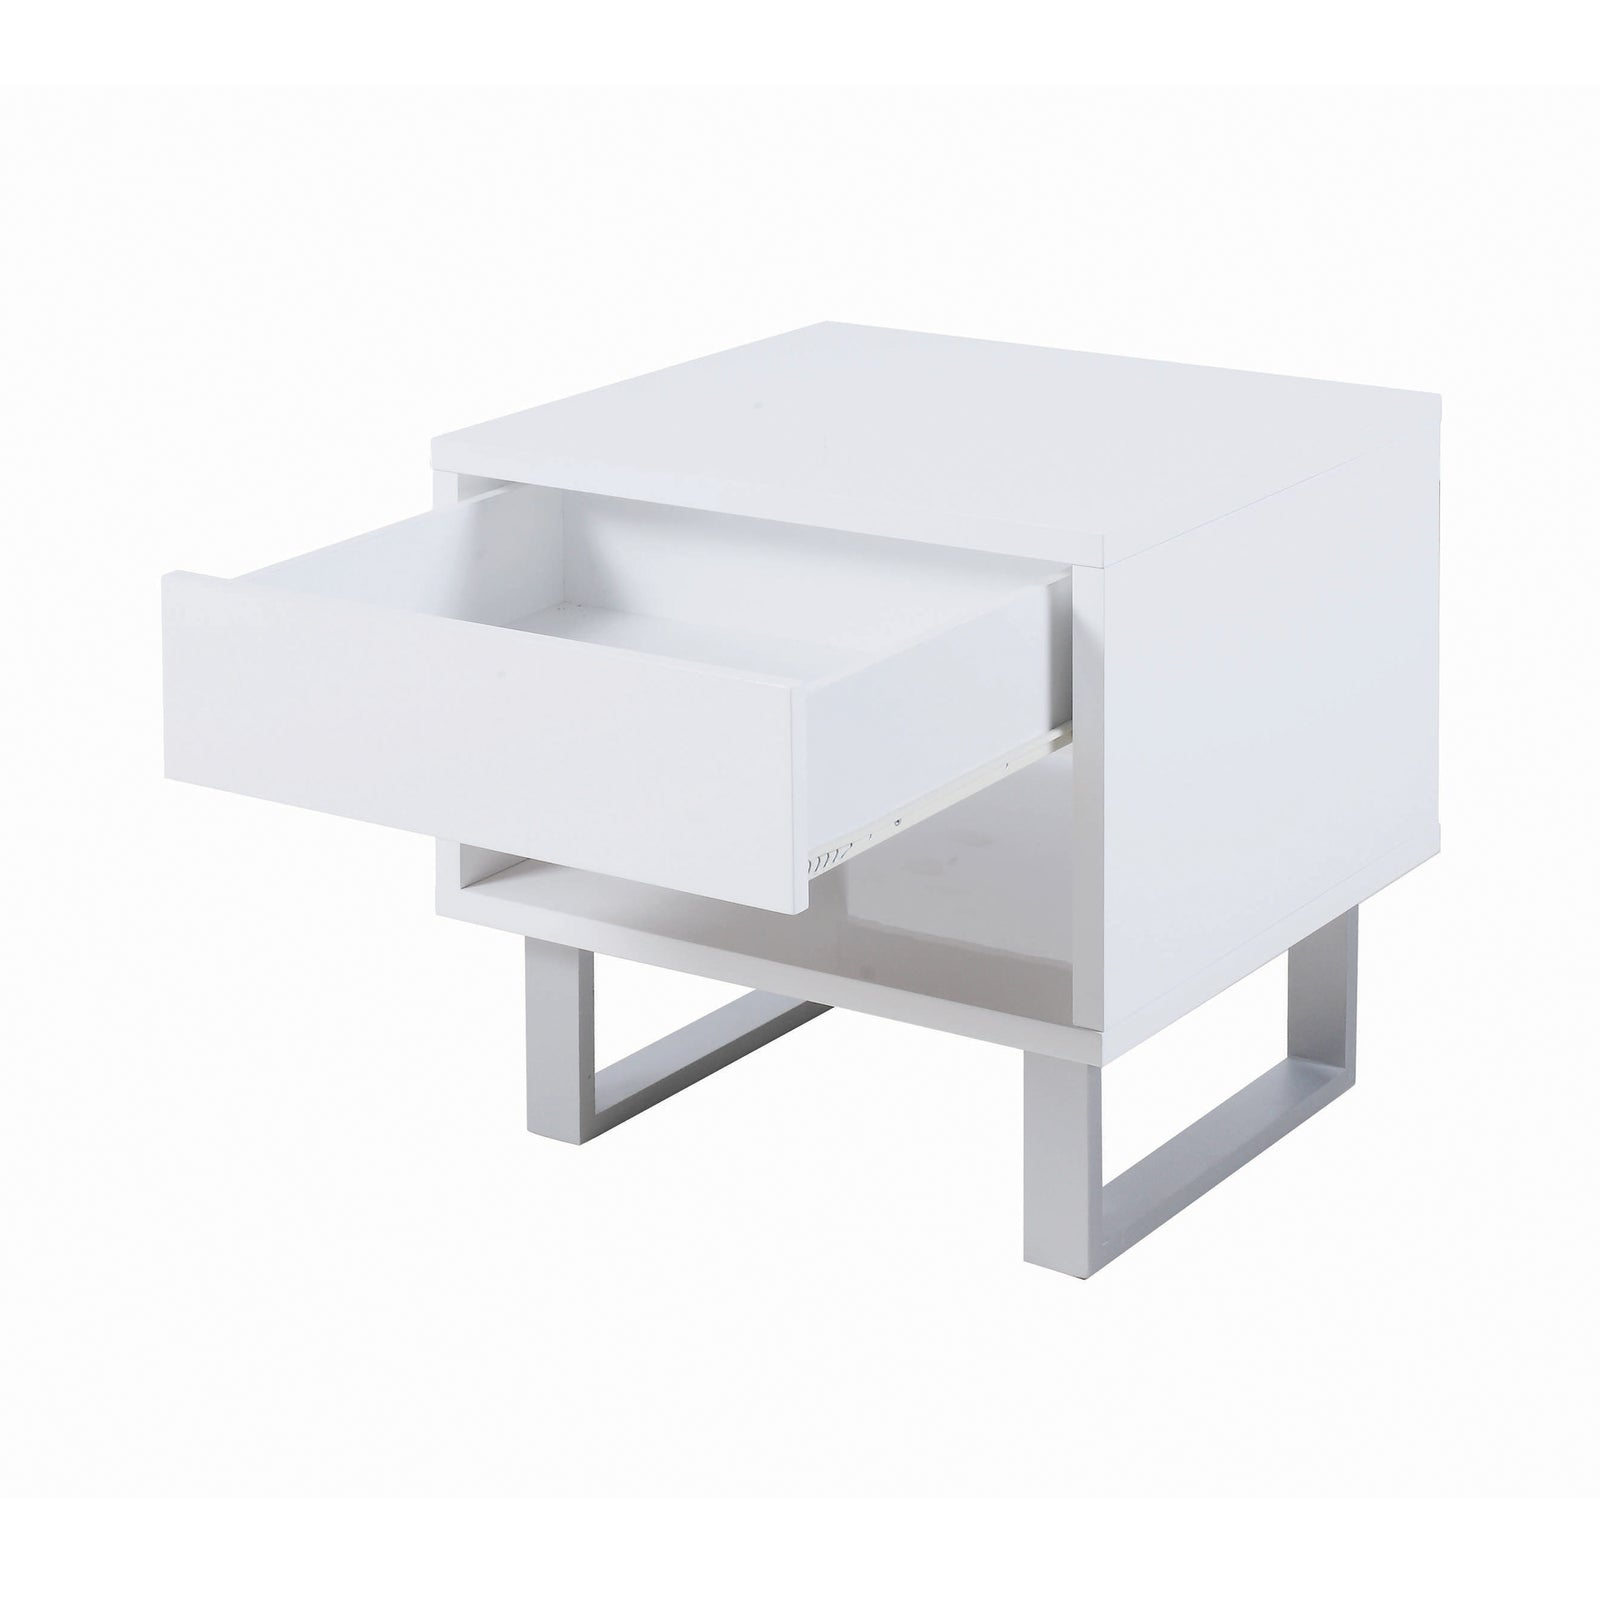 Coaster 705697 | 1-Drawer U-shaped Legs End Table High Glossy White Light Finish Top